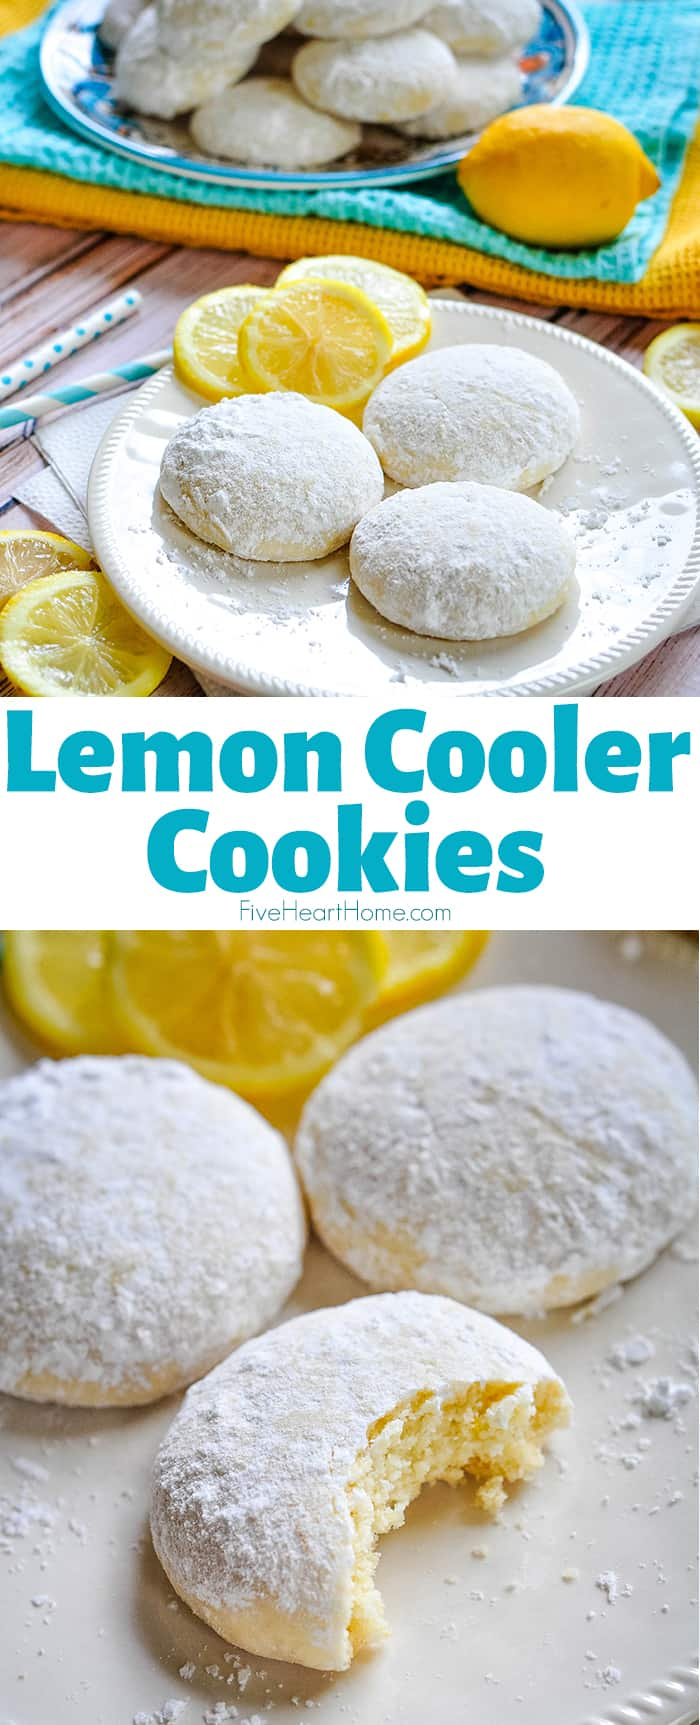 Lemon Cooler Cookies ~ soft, tender cookies bursting with fresh lemon and real butter, then coated in lemony powdered sugar! | FiveHeartHome.com